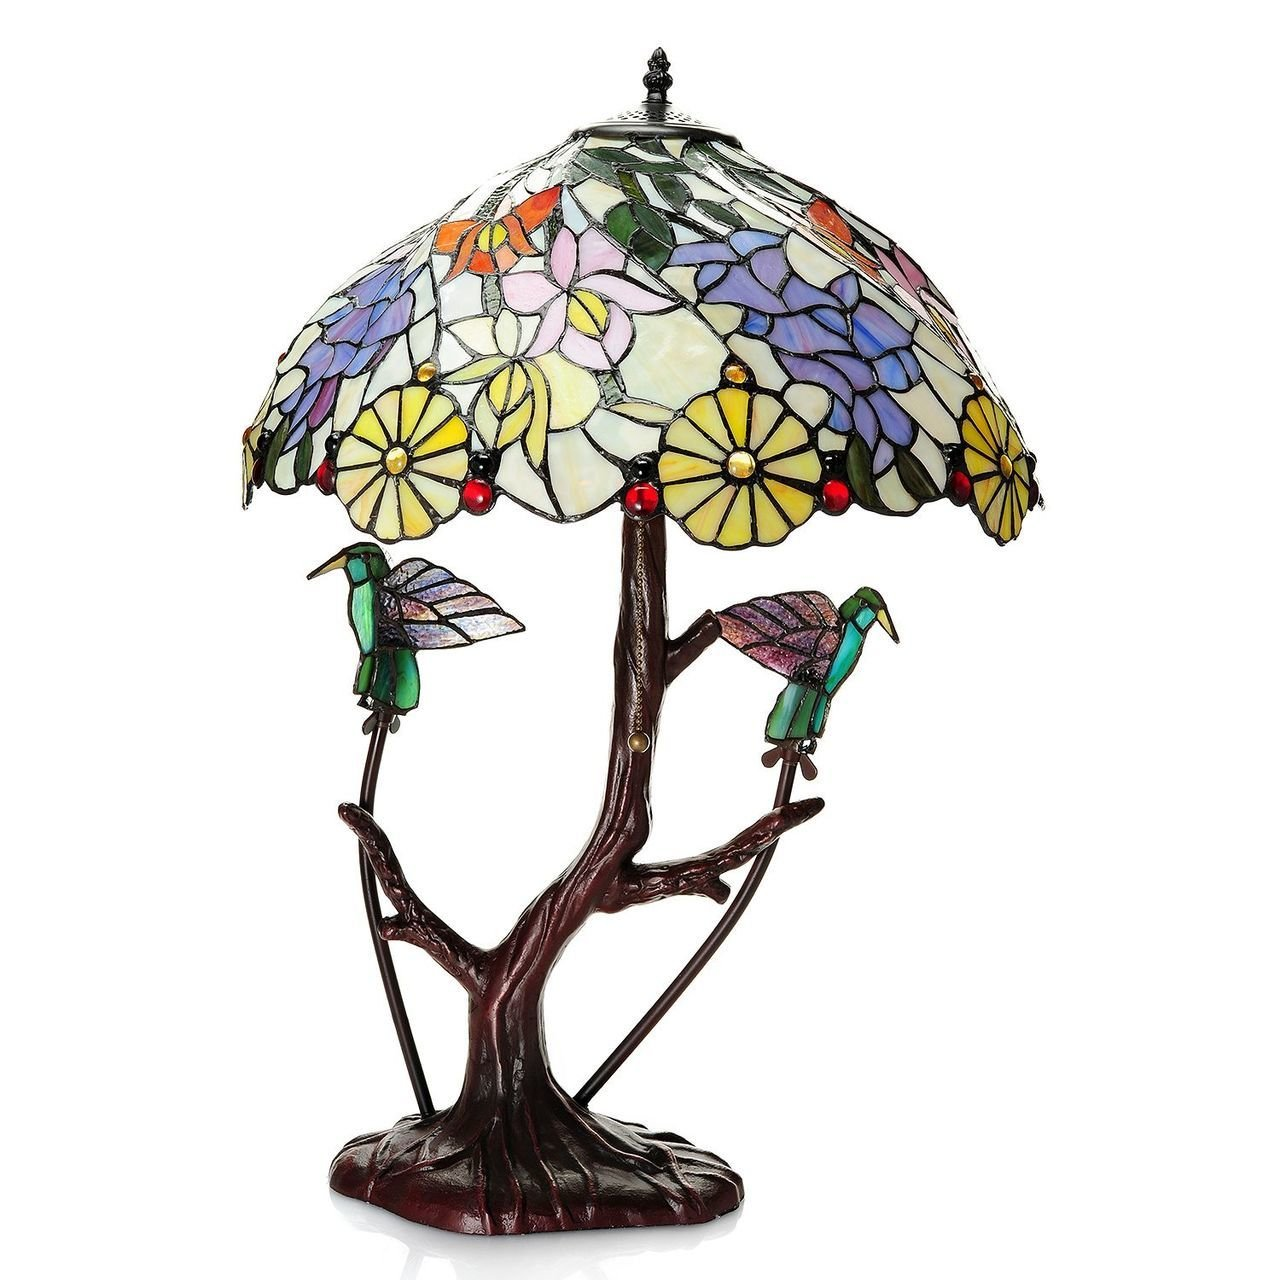 Warehouse of Tiffany Shiyee Love Birds Stained Glass 2-light Table Lamp, Multi, 18'' D x 26'' H